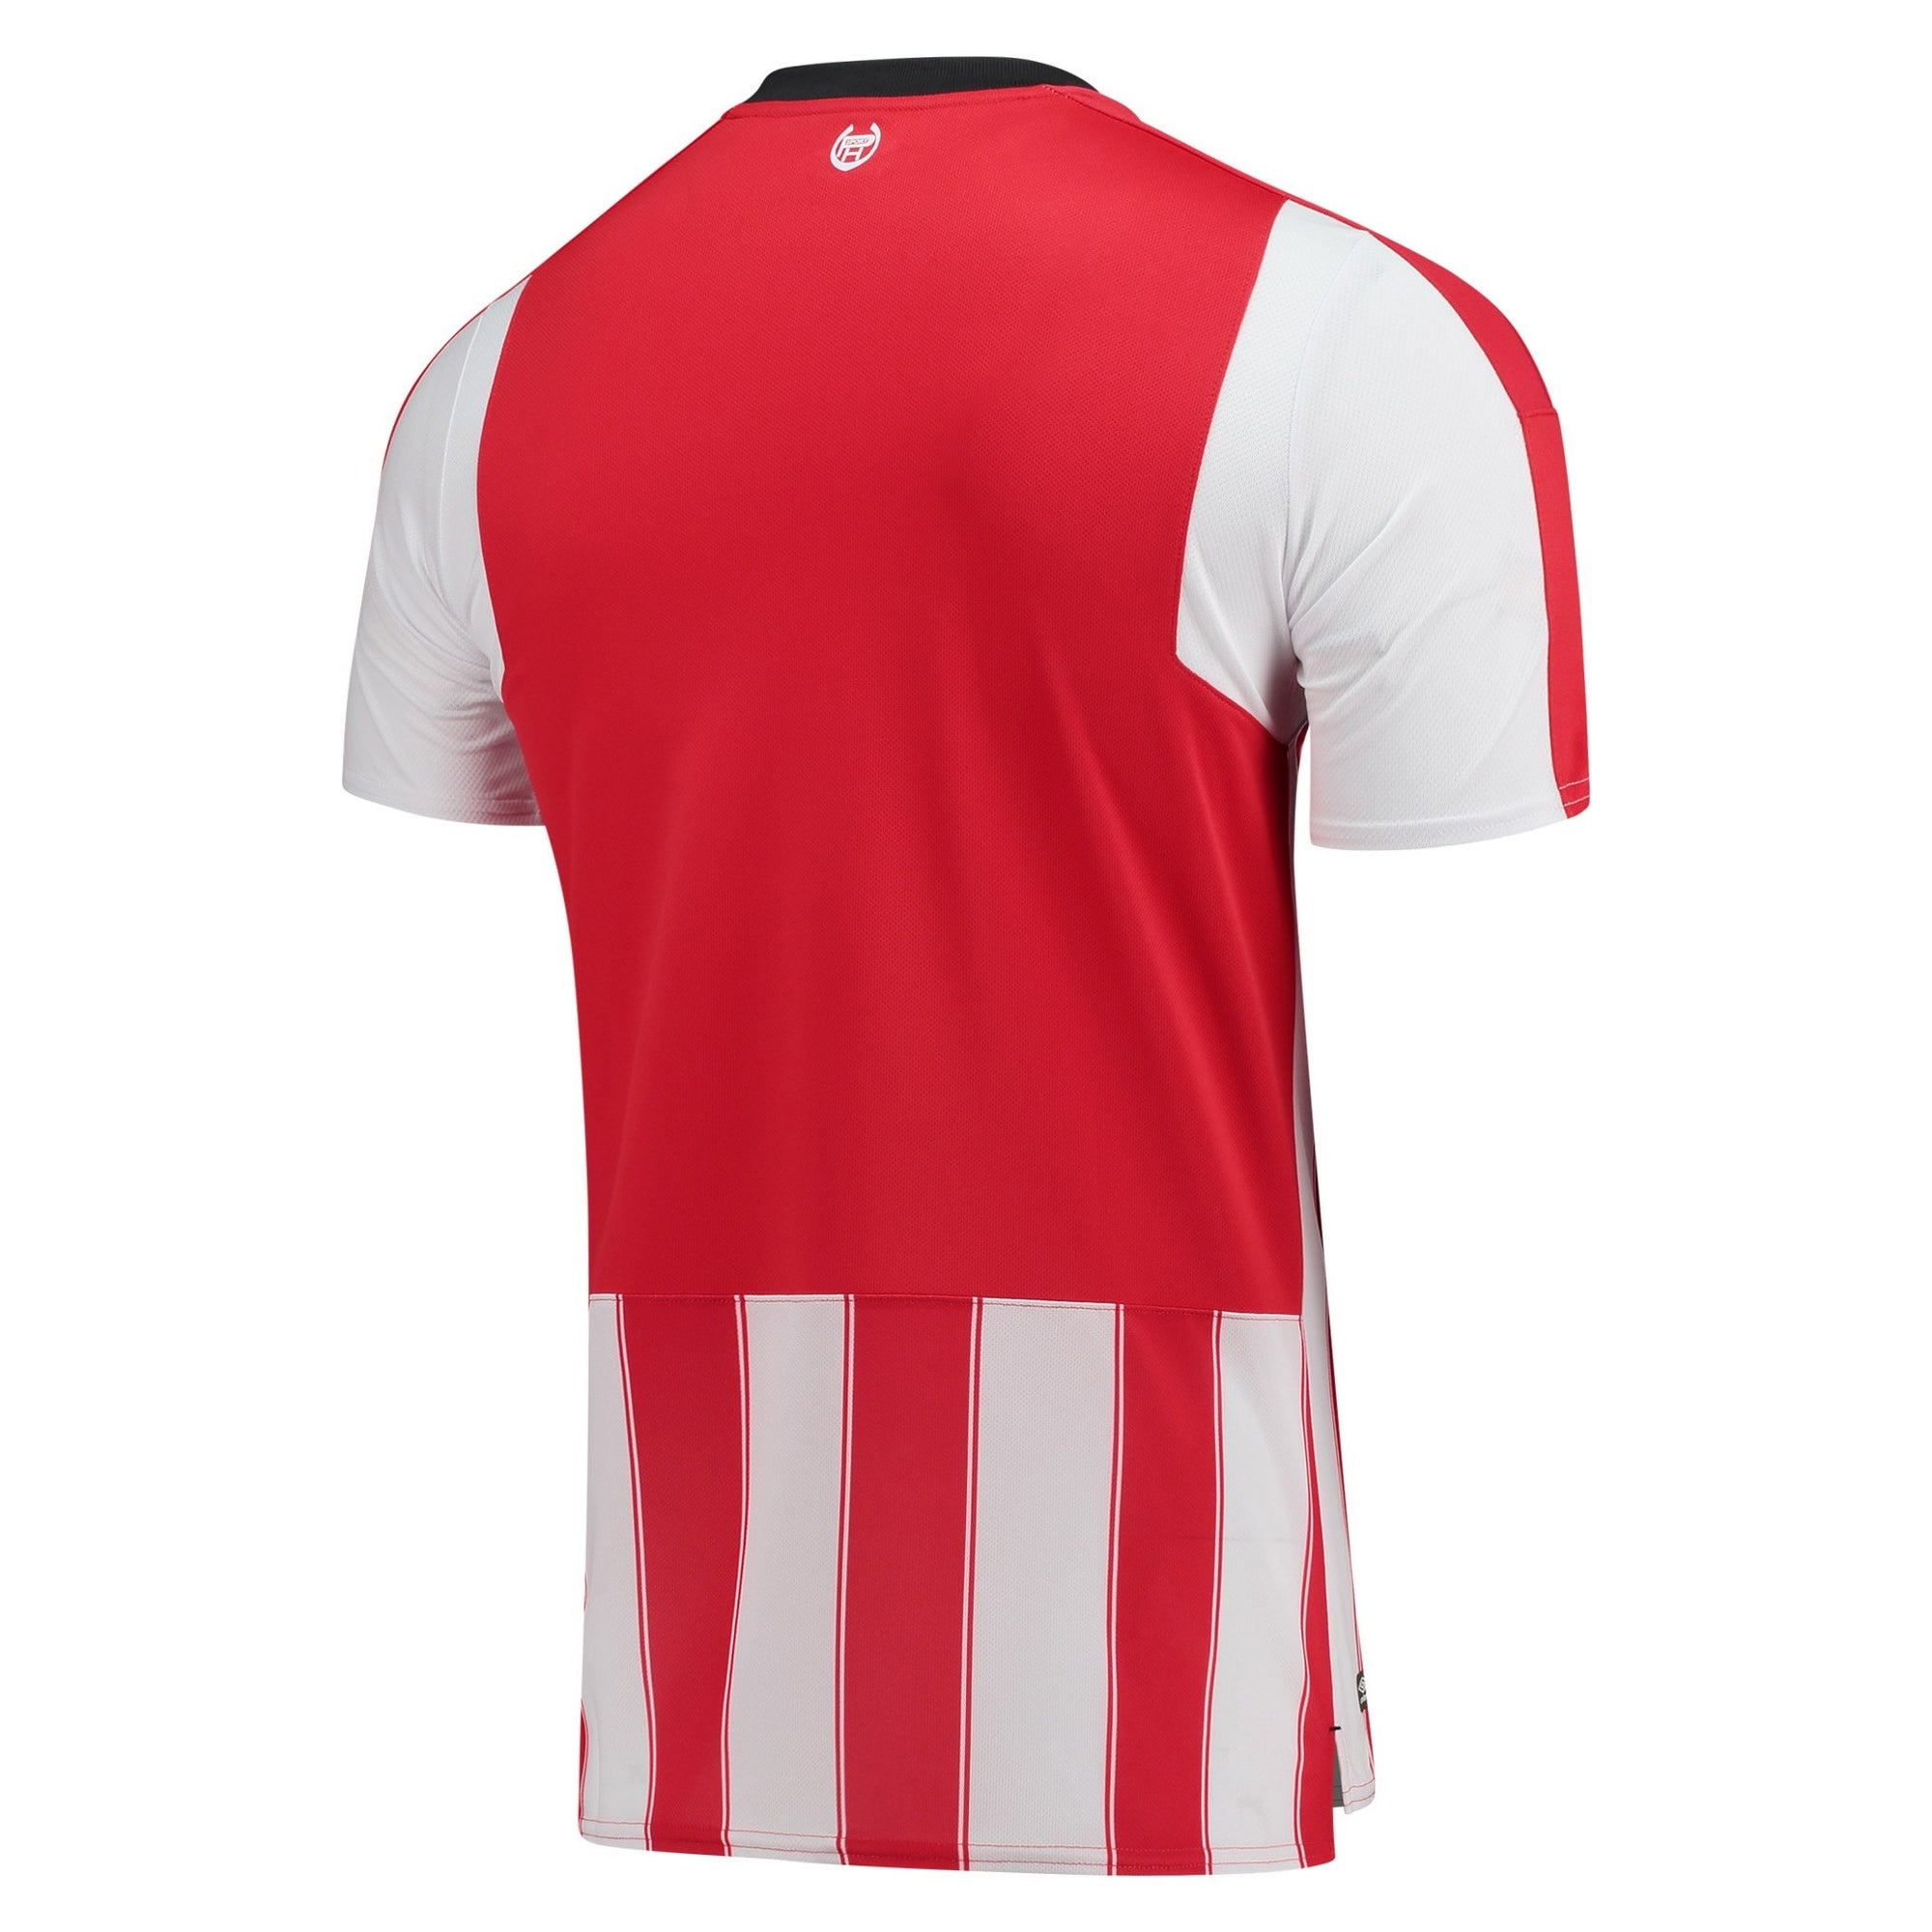 Men's PSV Eindhoven 17/18 Home Stadium Jersey - White/Red